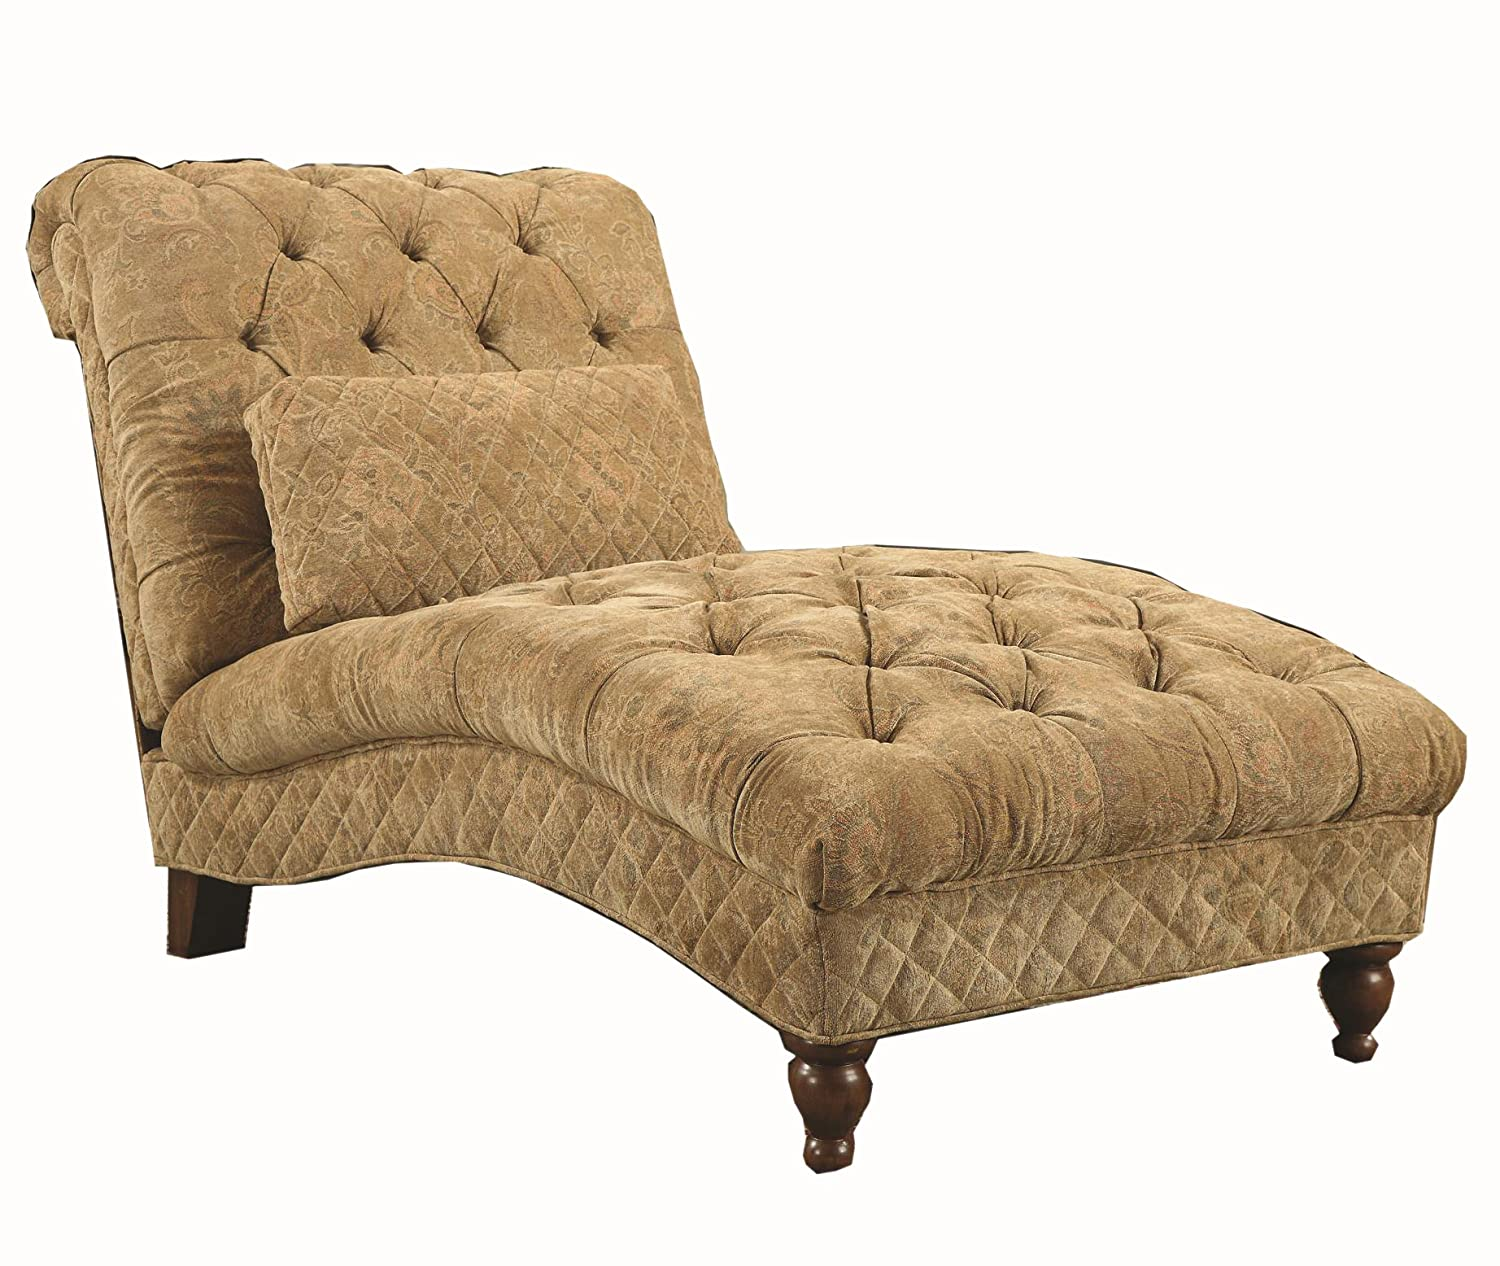 Coaster Home Furnishings Modern Transitional Scroll Tufted Upholstered Chaise Lounge Chair with Lumbar Pillow - Golden  sc 1 st  Amazon.com : discount chaise lounge - Sectionals, Sofas & Couches